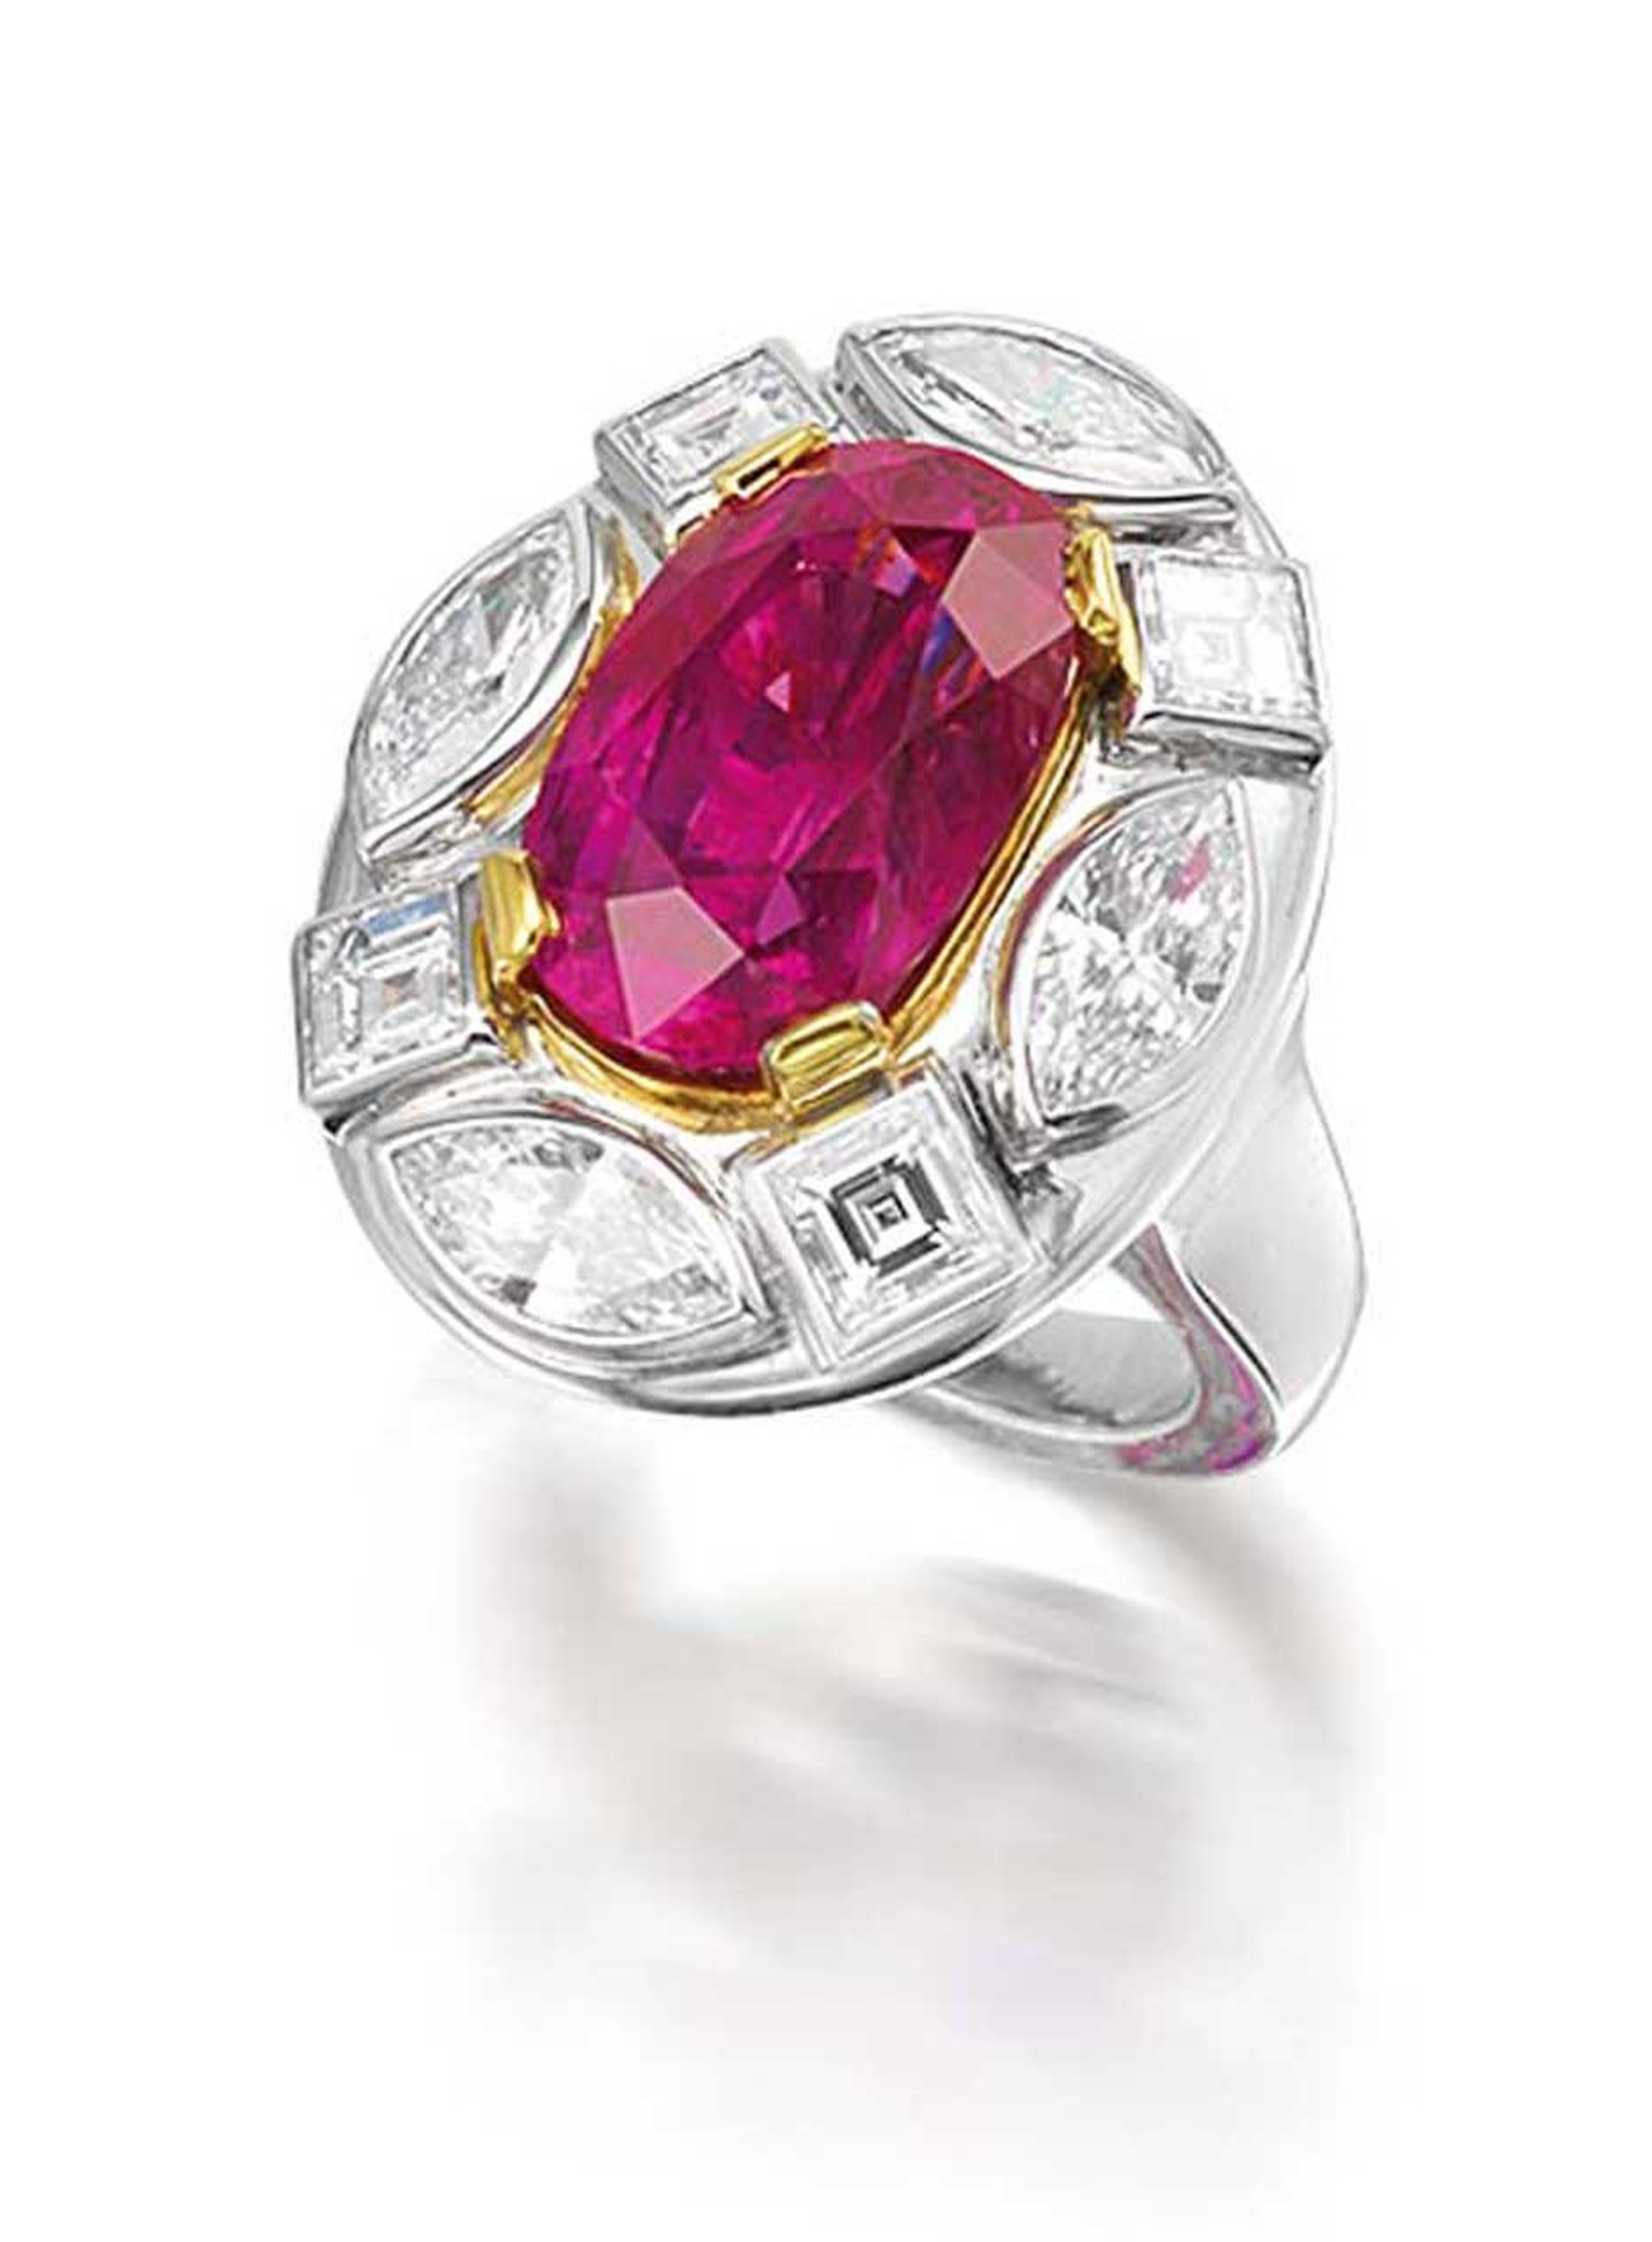 Ruby and diamond Georgina ring by Marina B with a 10.54ct Burmese ruby surrounded by marquise and Asscher-cut diamonds.